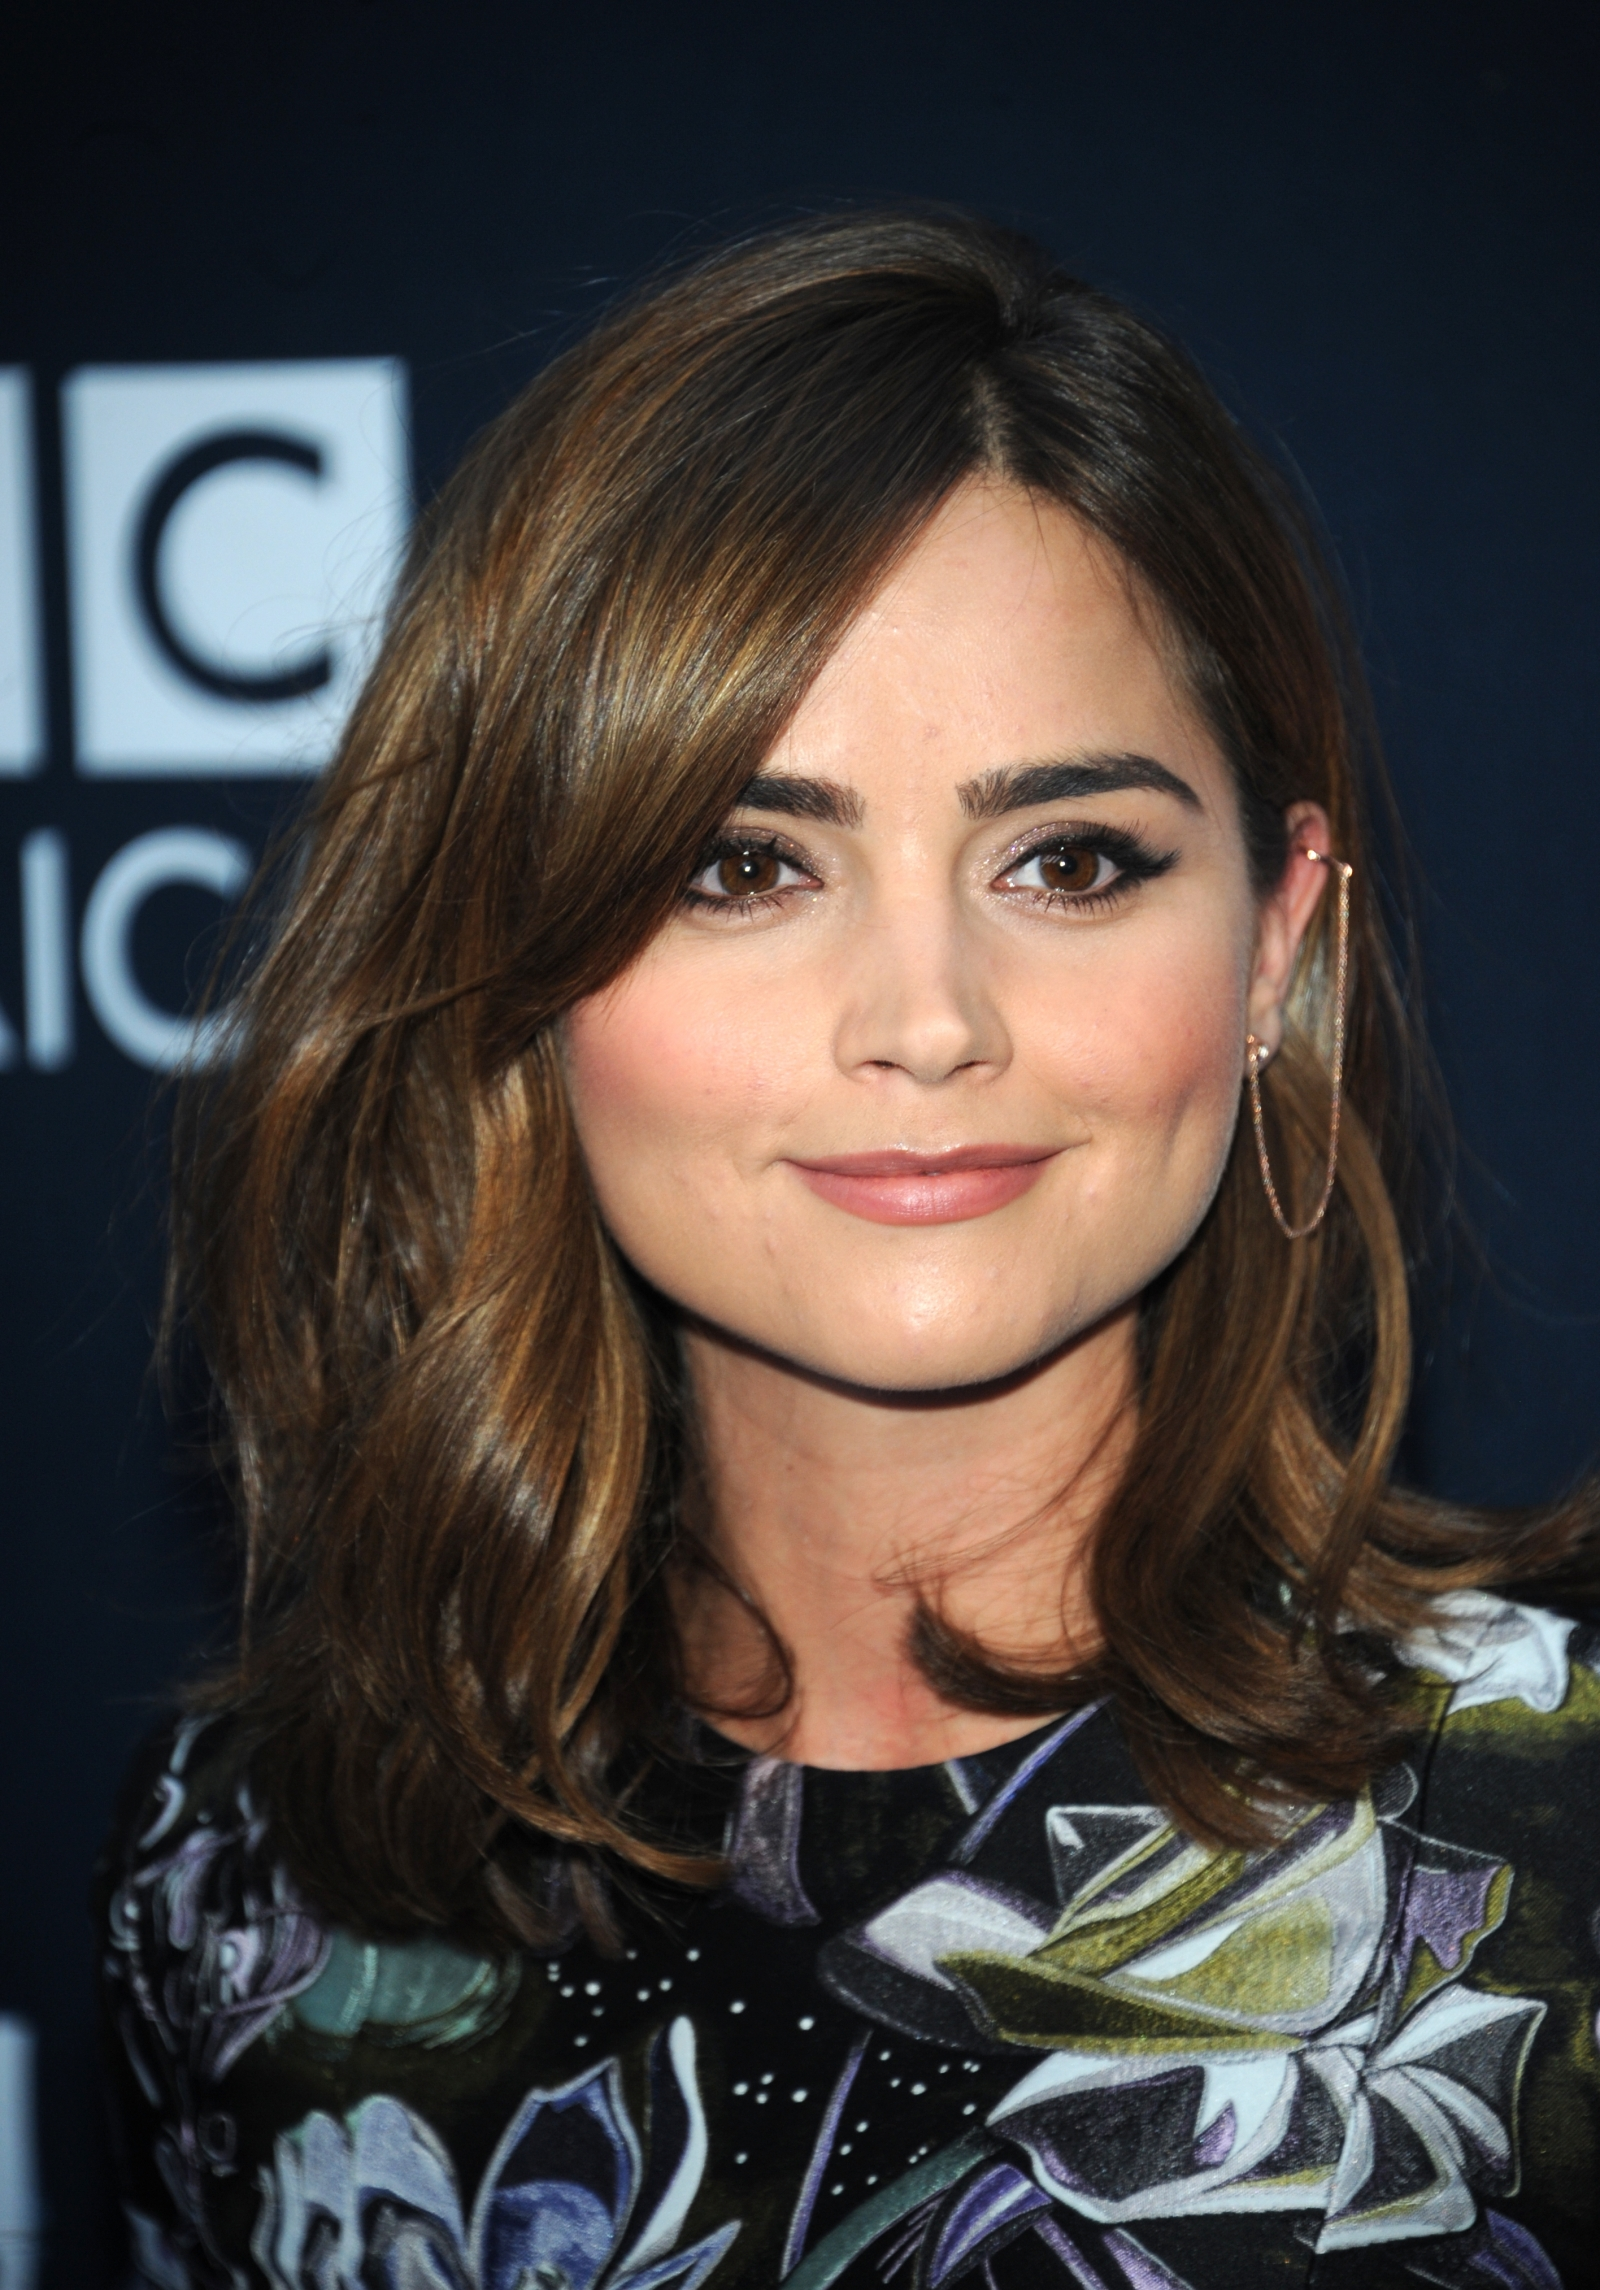 Jenna Coleman attends BBC America's 'Doctor Who' Premiere Fan Screening at Ziegfeld Theatre, New York